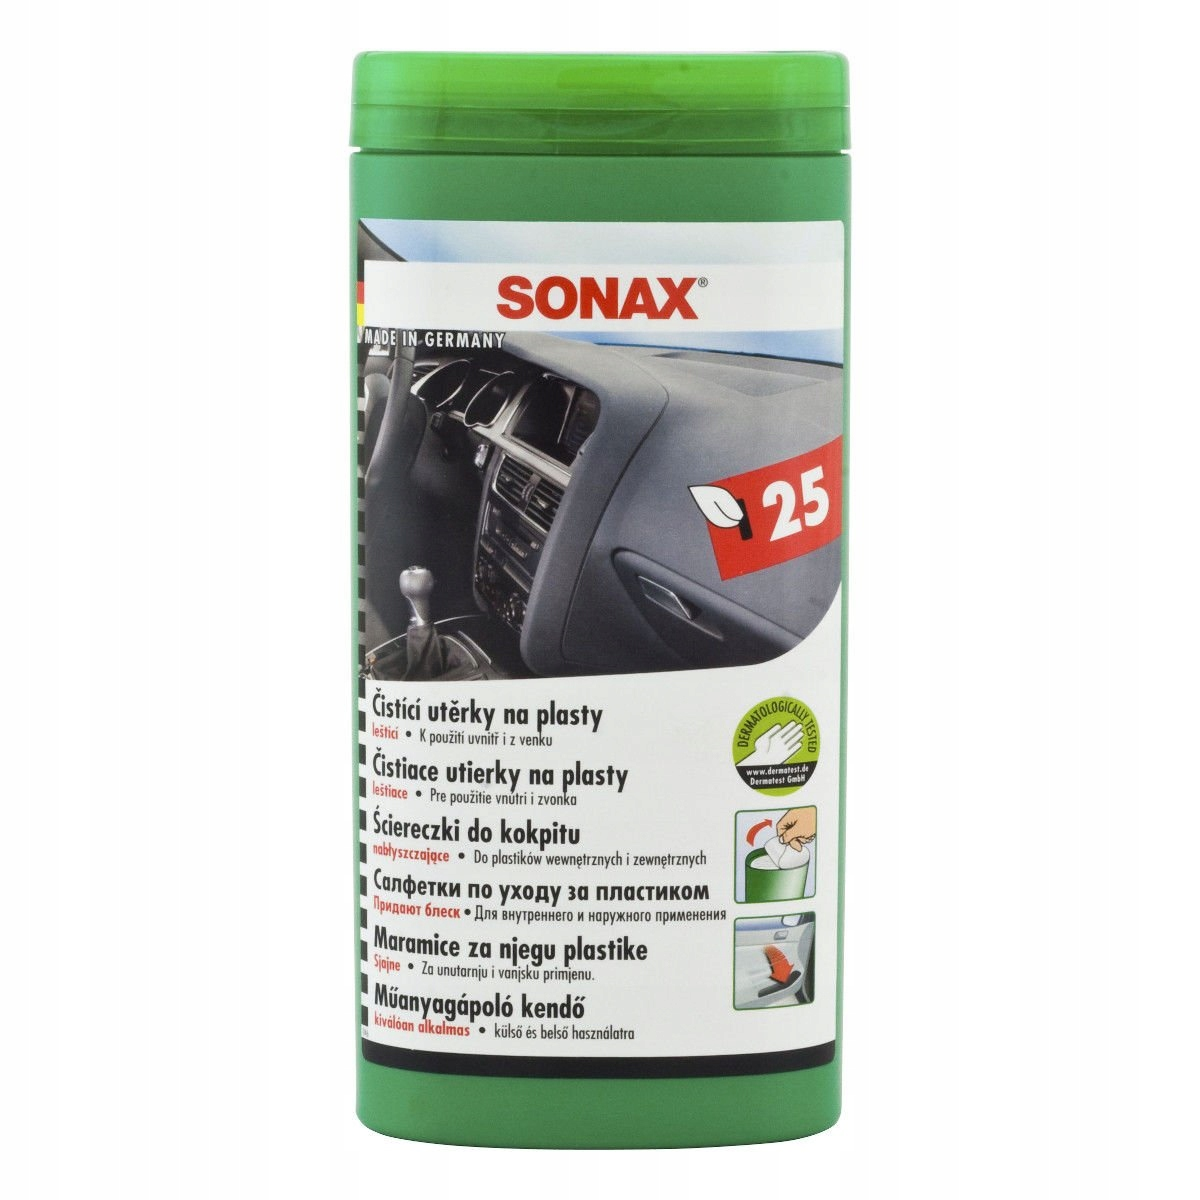 SONAX WET WIPES COCKPIT WIPES 25шт